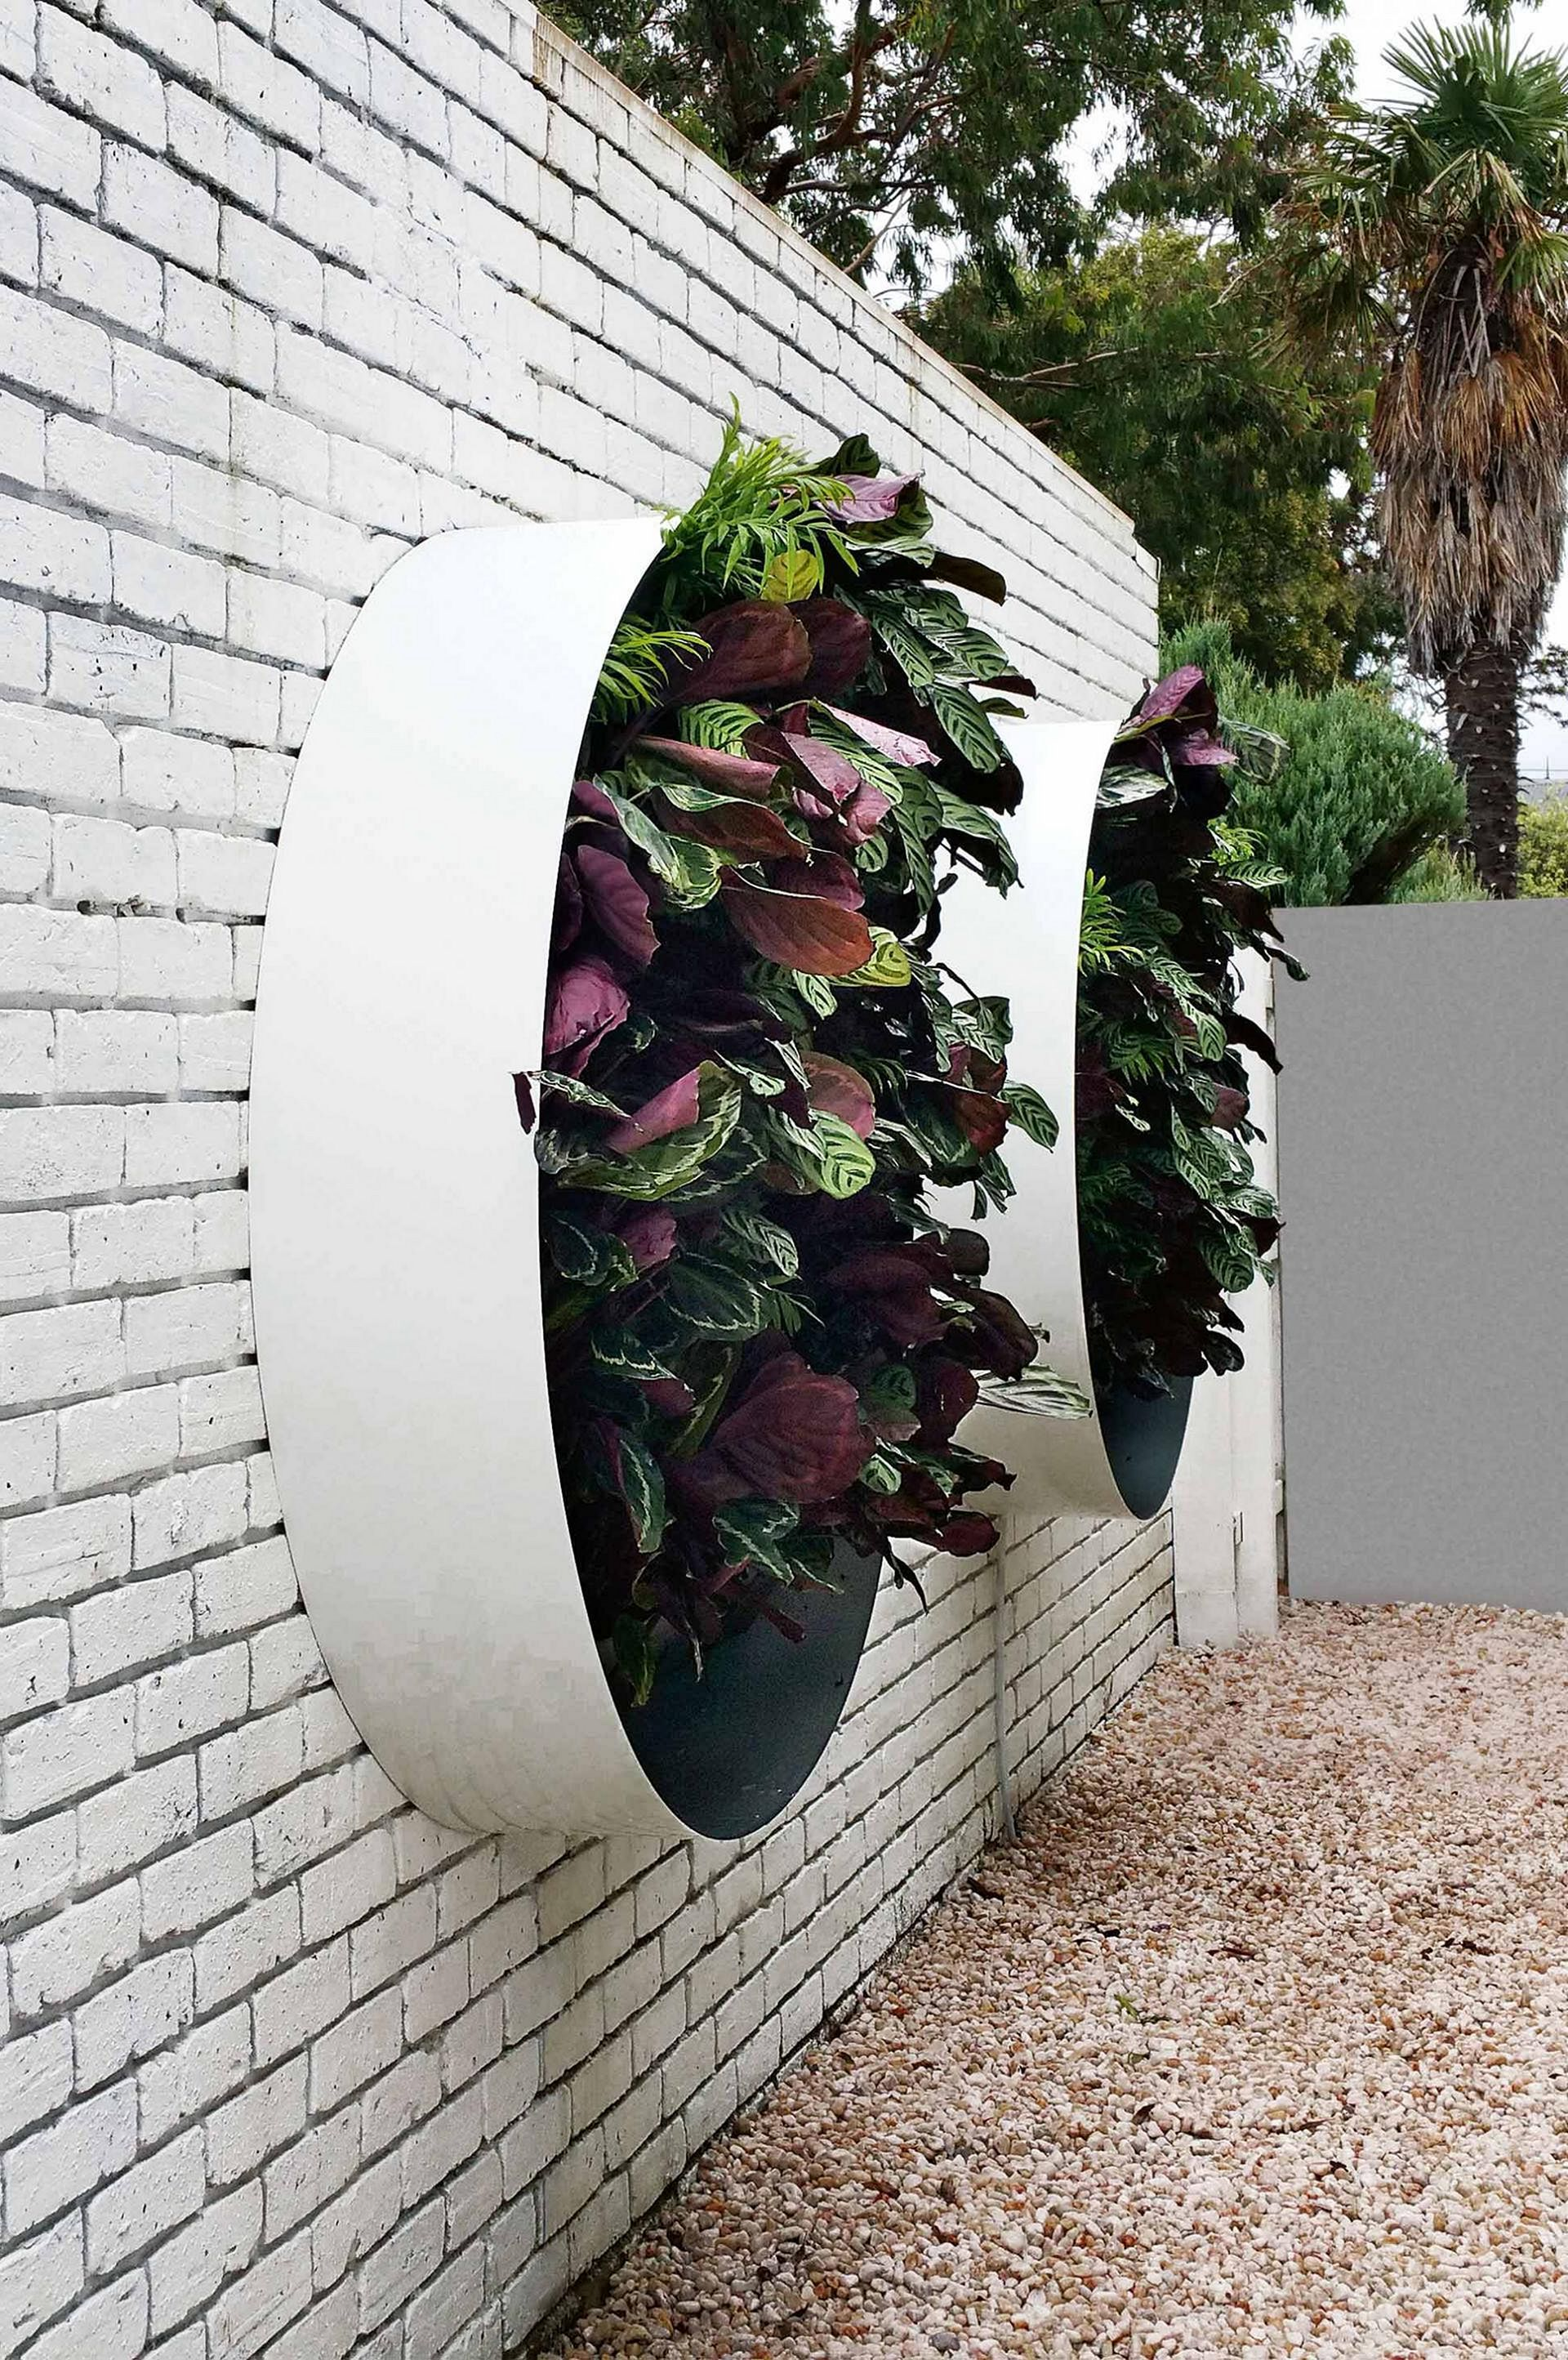 Marvelous 50 Best Cheap and Easy DIY Wall Gardens Outdoor Inspirations http://goodsgn.com/gardens/50-best-cheap-and-easy-diy-wall-gardens-outdoor-inspirations/